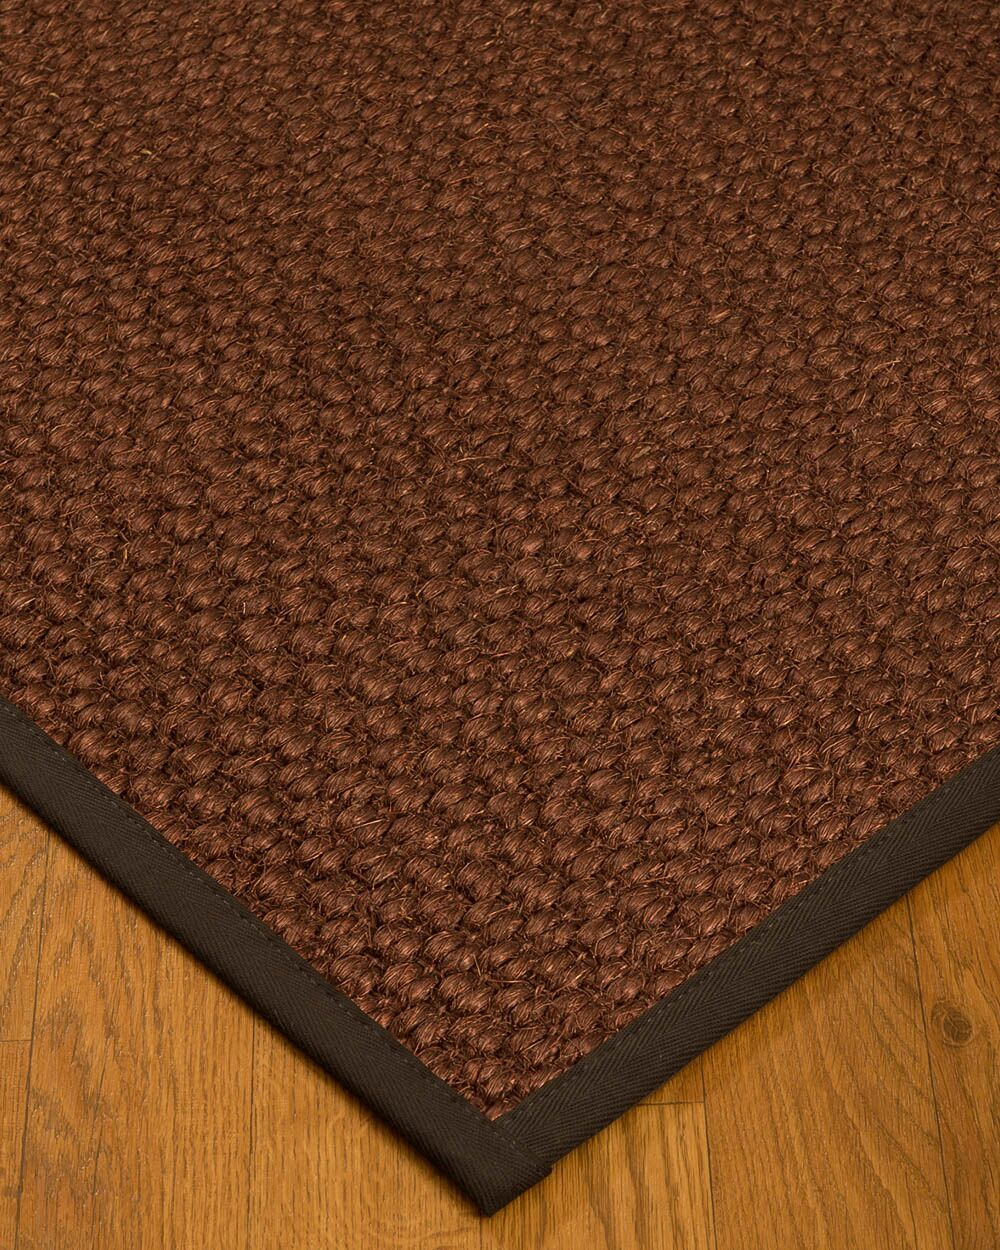 Kerrick Border Hand-Woven Brown/Fudge Area Rug Rug Size: Rectangle 5' x 8', Rug Pad Included: Yes